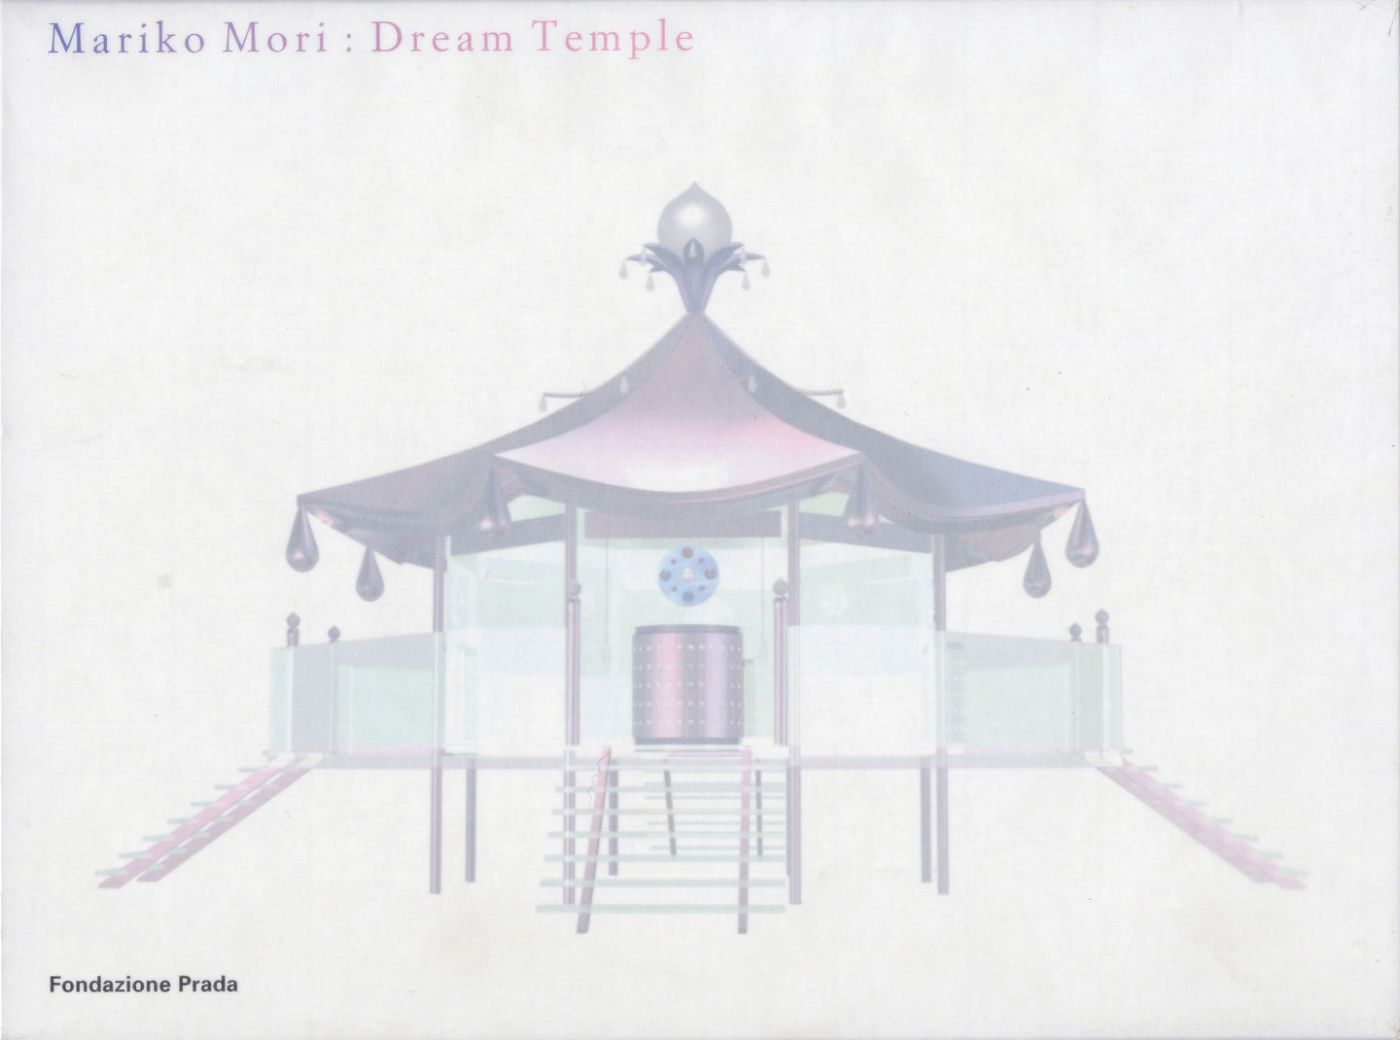 Mariko Mori: Dream Temple